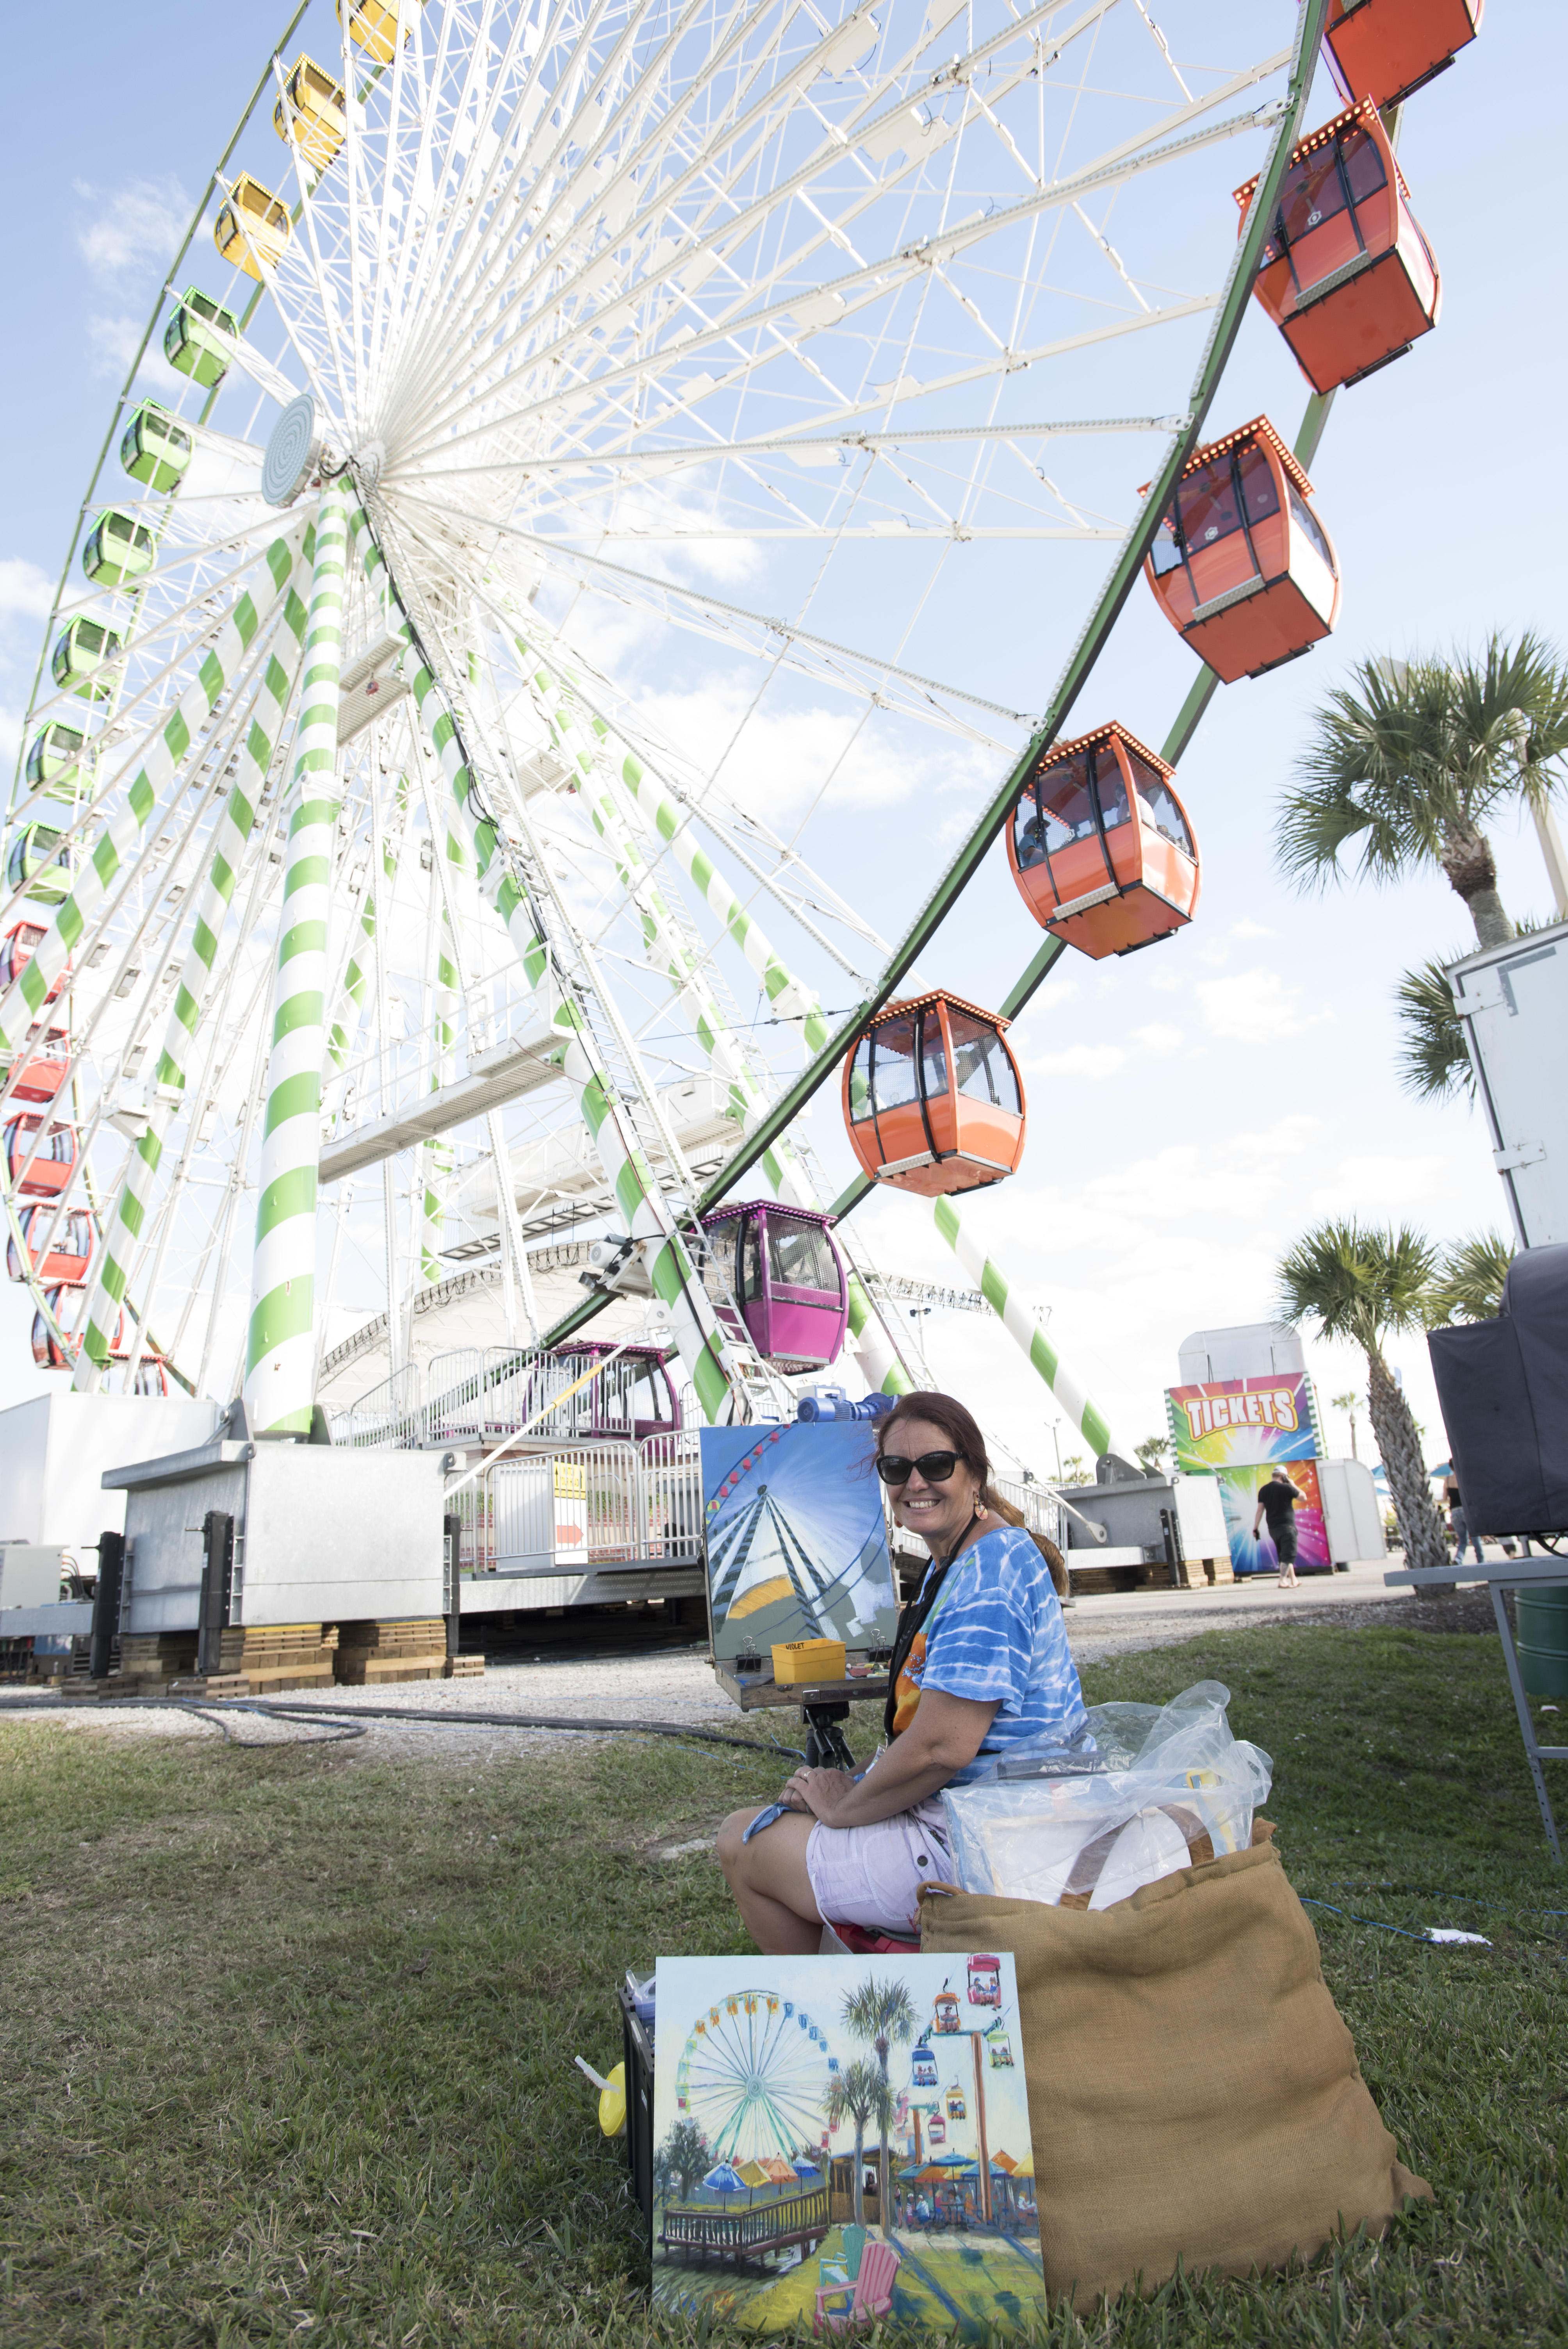 Florida State Fairgrounds In Schedule Of Events For Monday At Florida State Fairgrounds